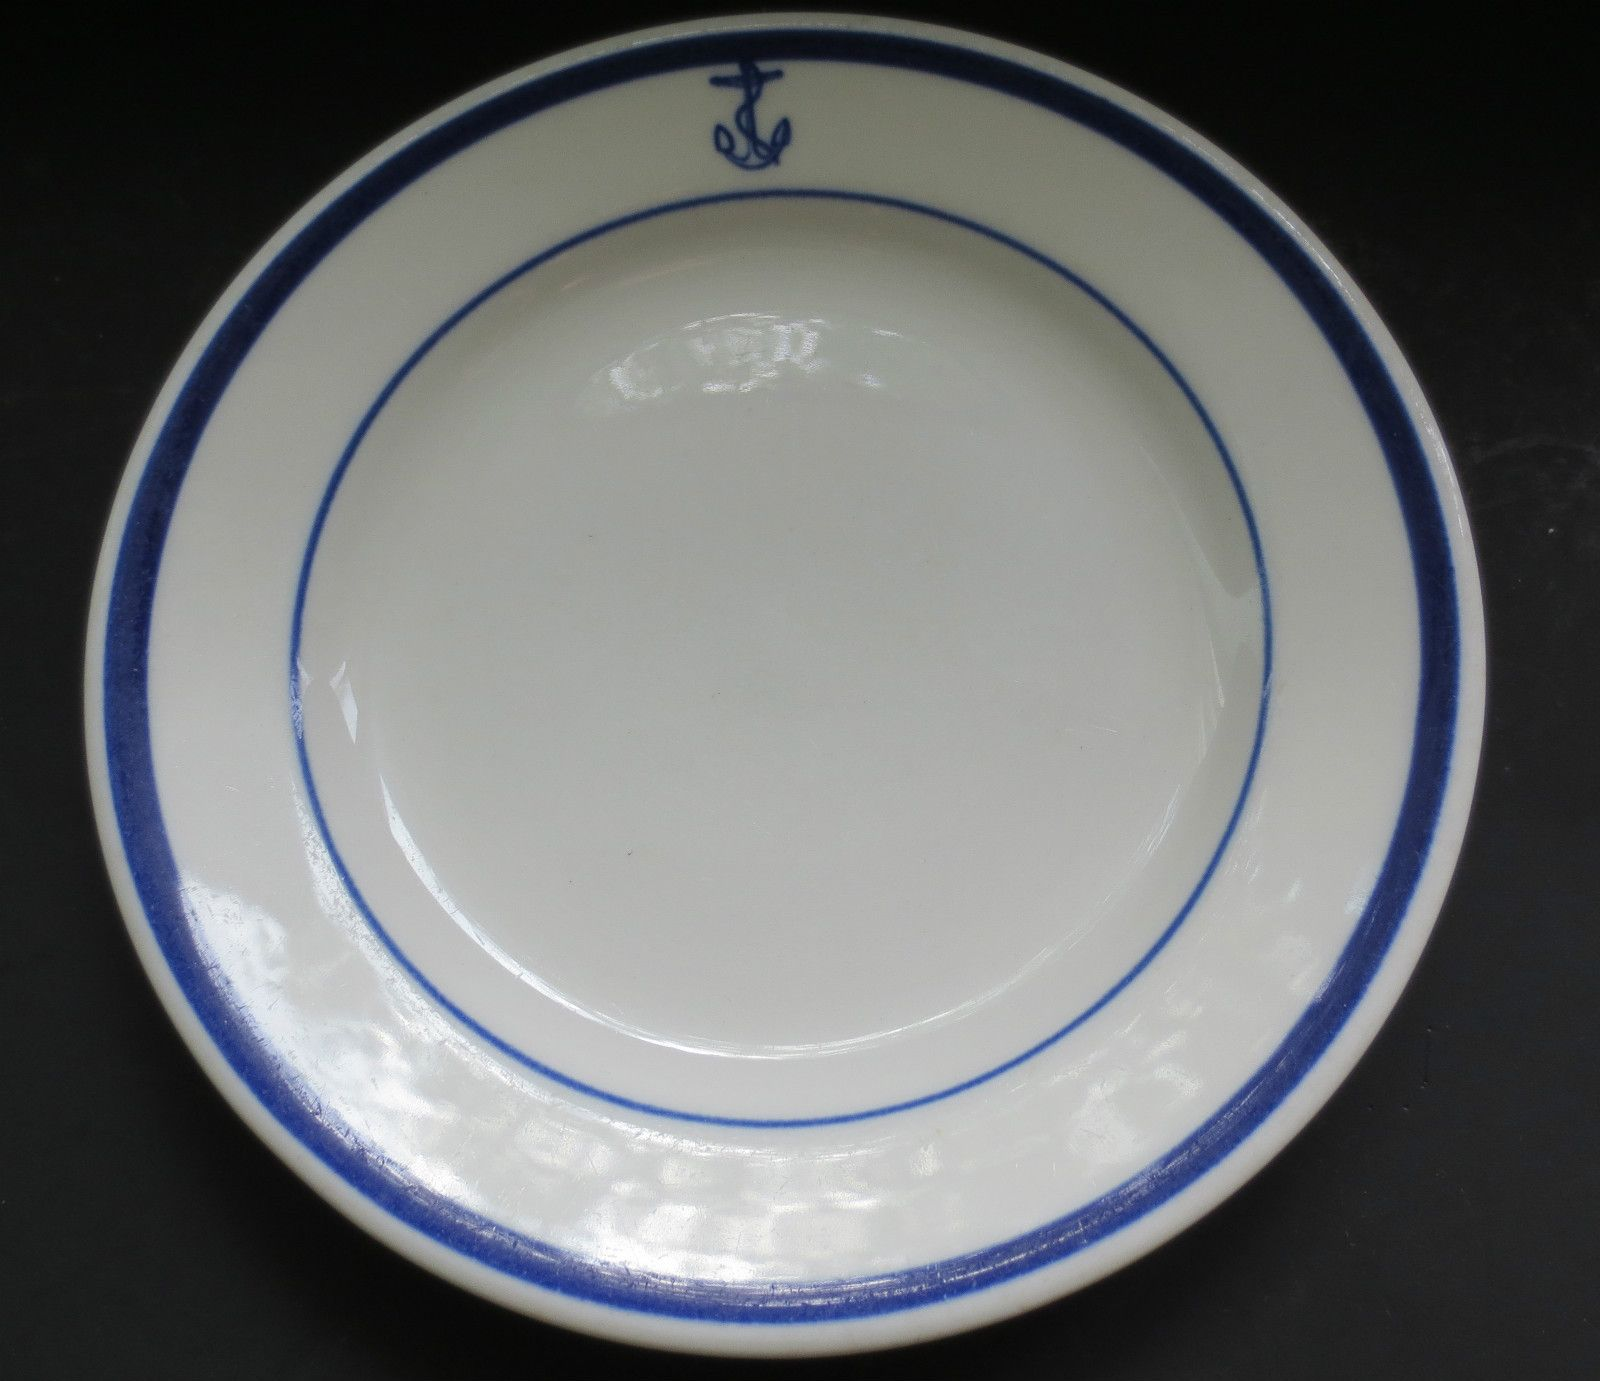 US Navy Officer Mess Plate 6 Fouled Anchor Restaurant Ware Homer Laughlin & US Navy Officer Mess Plate 6\